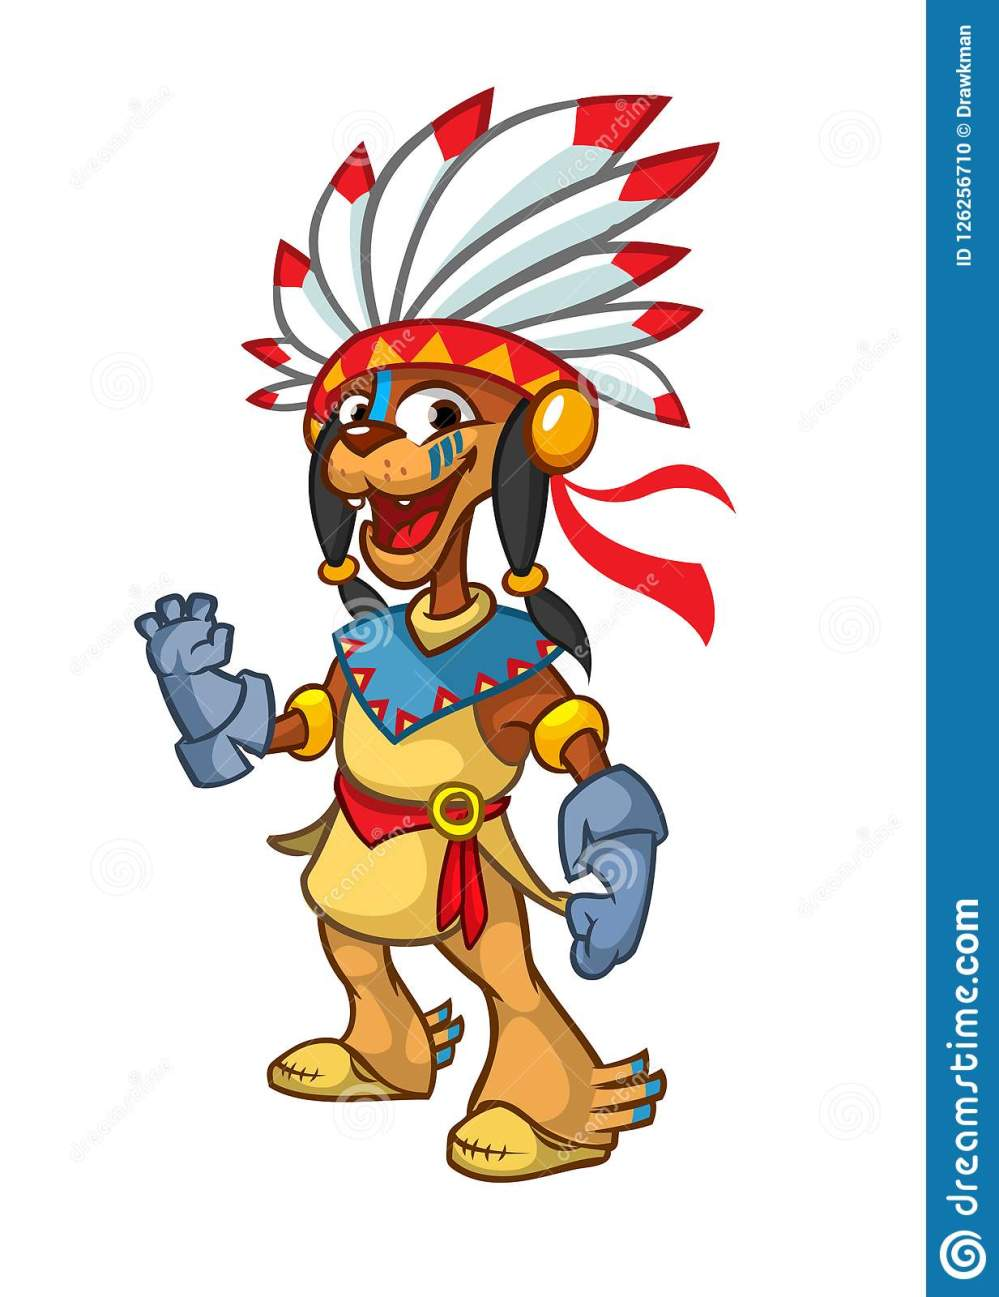 medium resolution of cartoon native american indian character illustration clipart